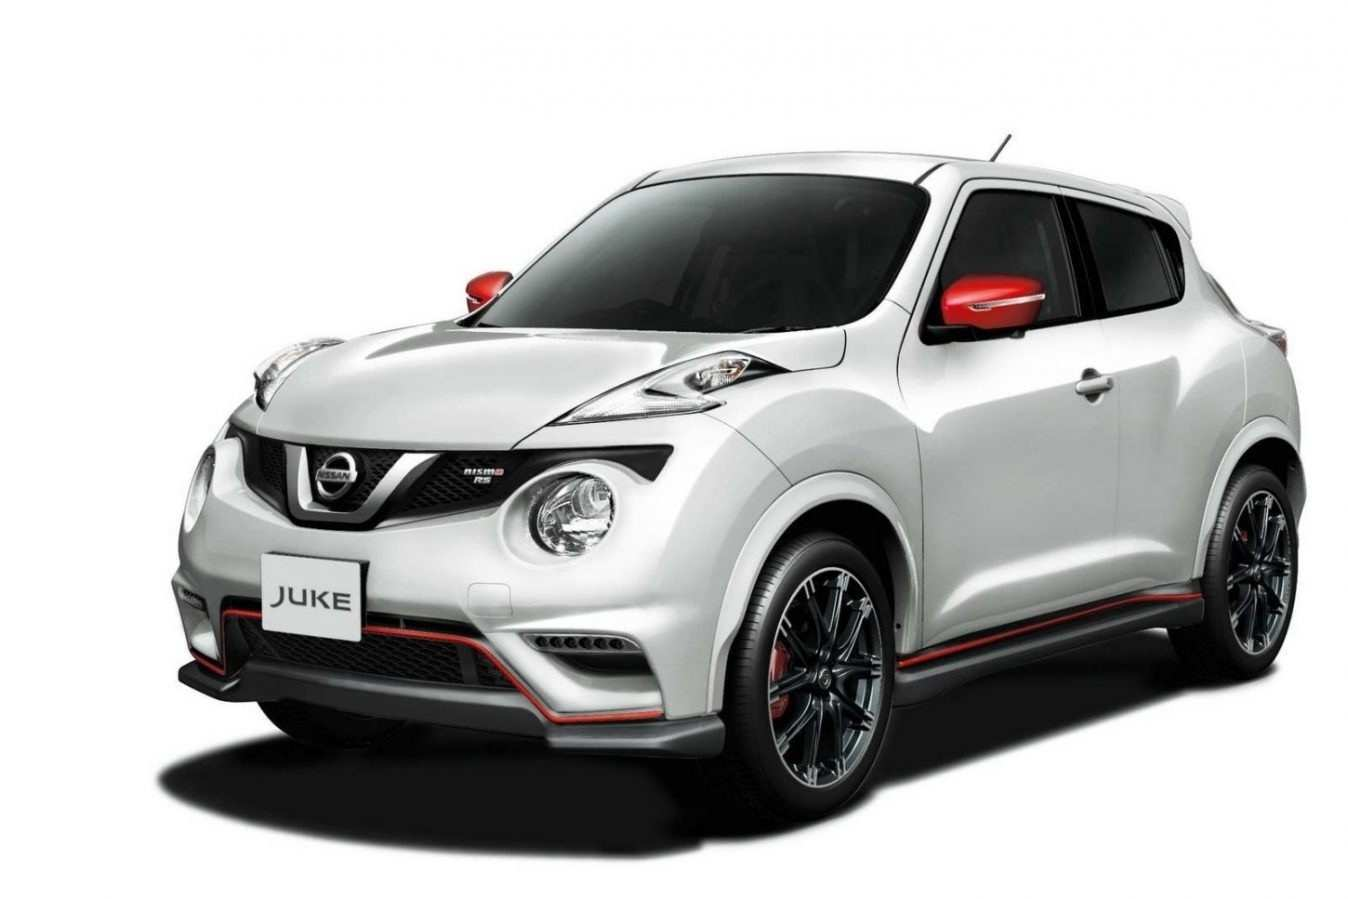 83 New Nissan Juke 2019 Release Date Review